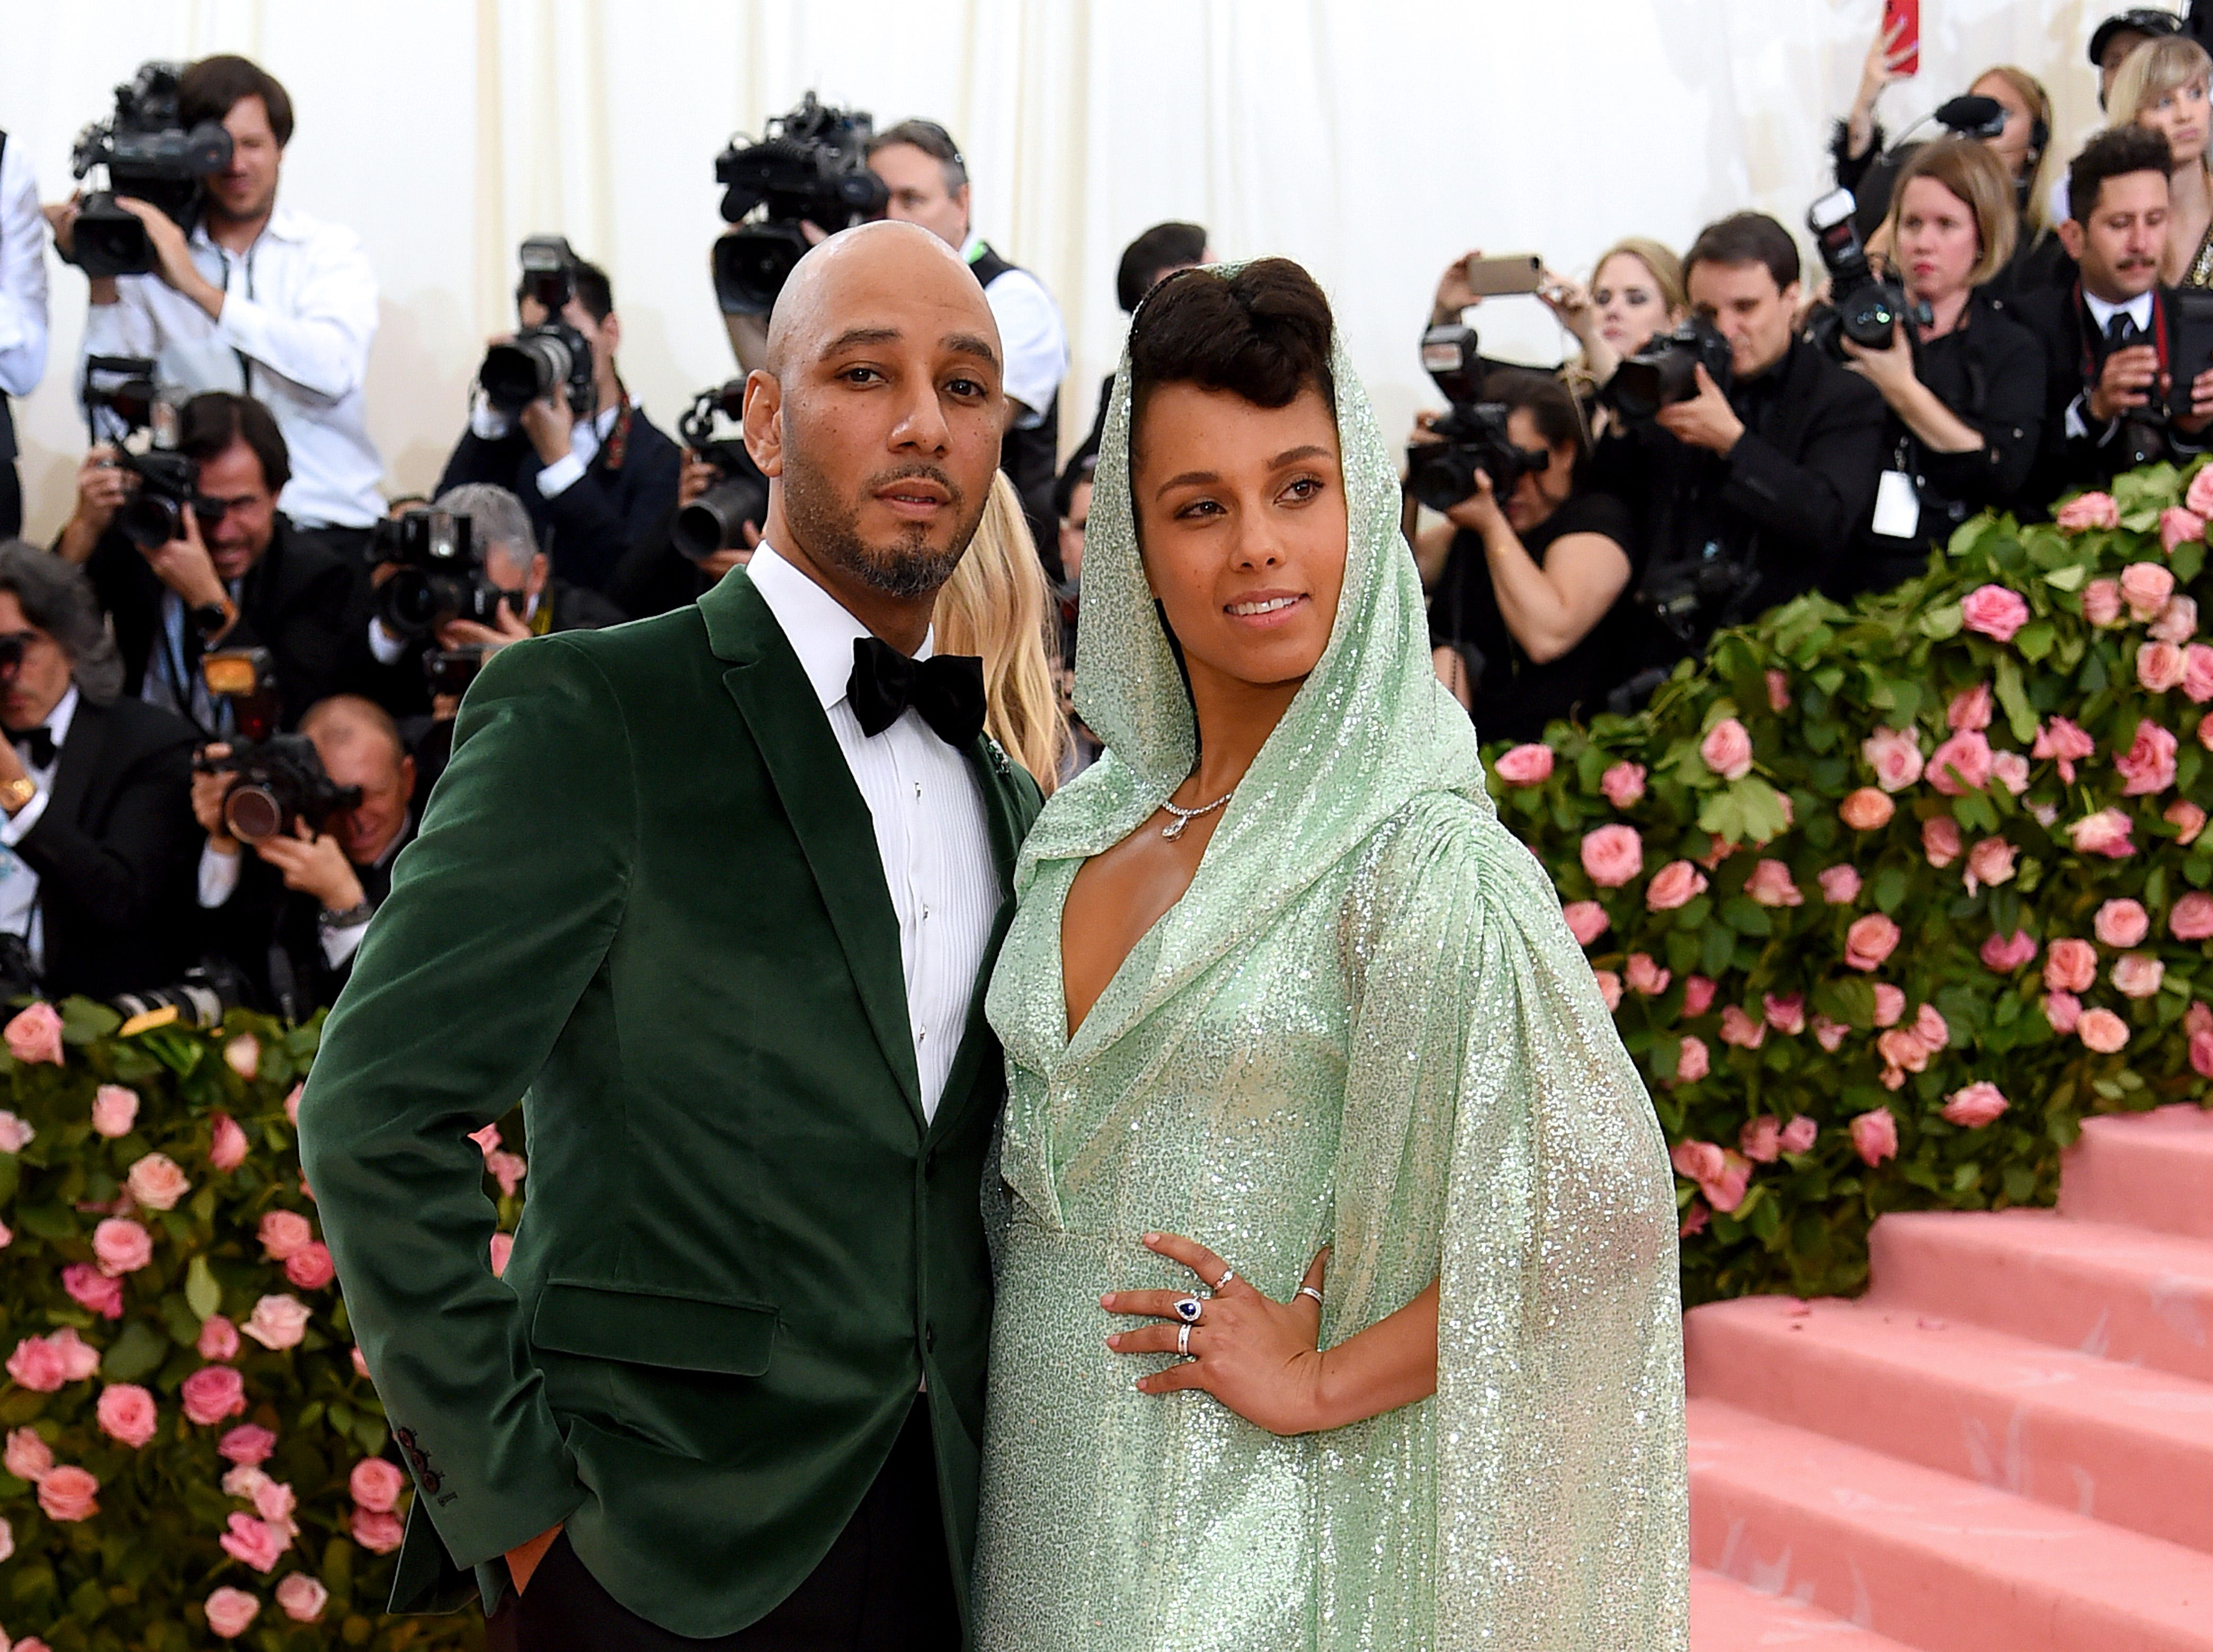 NEW YORK, NEW YORK - MAY 06: Swizz Beatz and Alicia Keys attend The 2019 Met Gala Celebrating Camp: Notes on Fashion at Metropolitan Museum of Art on May 06, 2019 in New York City. (Photo by Jamie McCarthy/Getty Images) ORG XMIT: 775333959 ORIG FILE ID: 1147435012